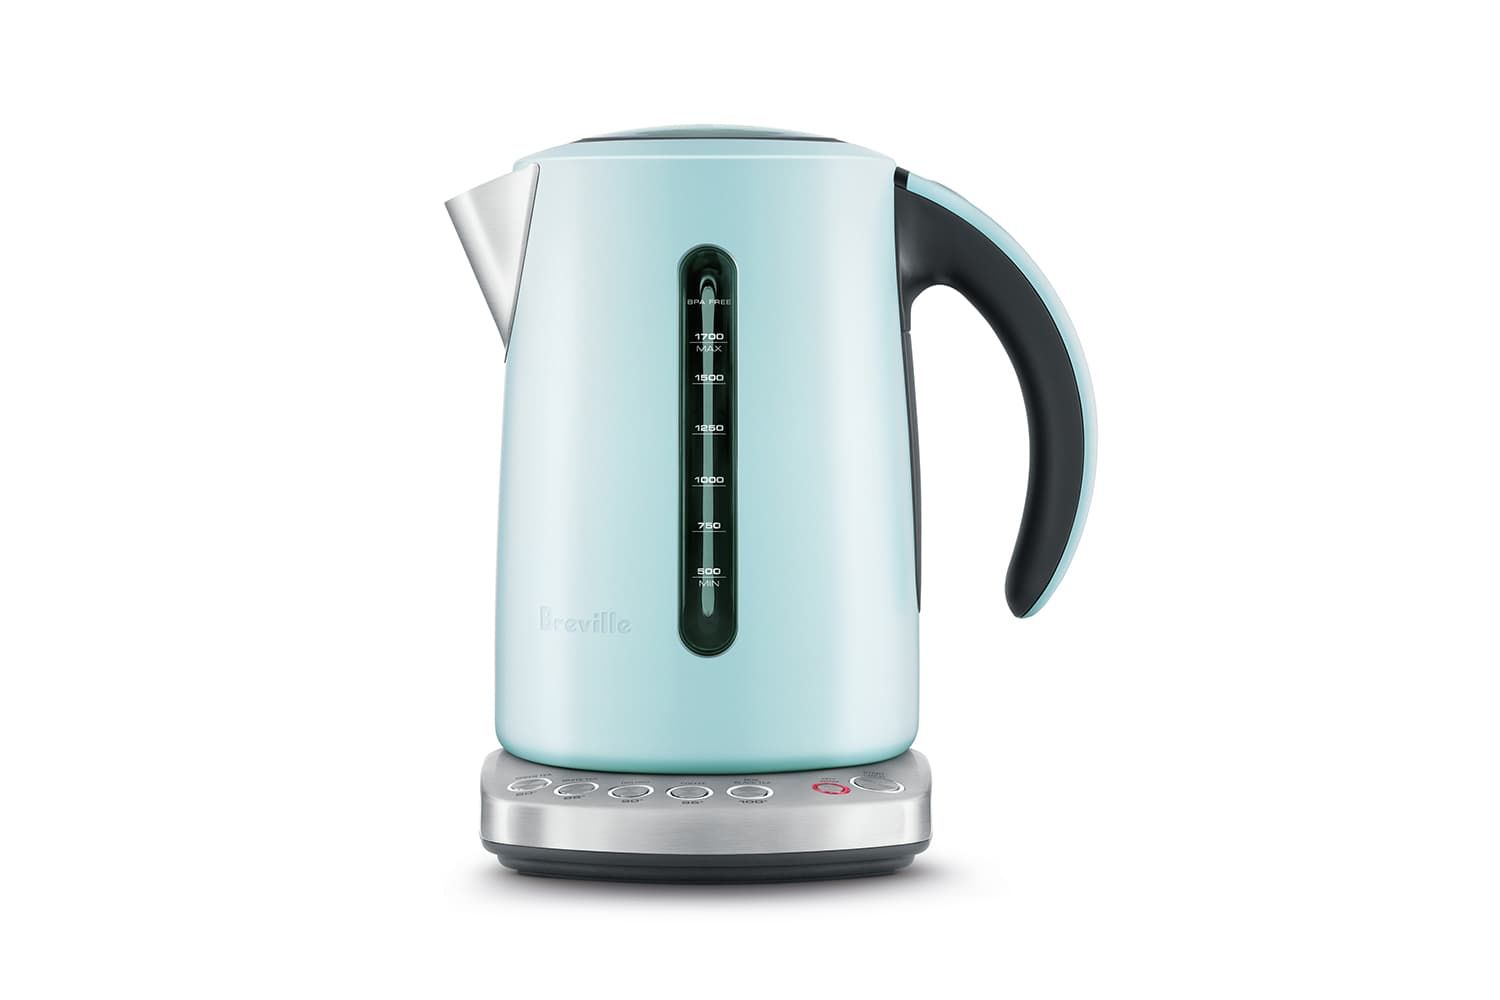 Home Home Appliances Kitchen Appliances Kettles Breville Smart Kettle Frost With Images Kitchen Appliances Kettle Breville